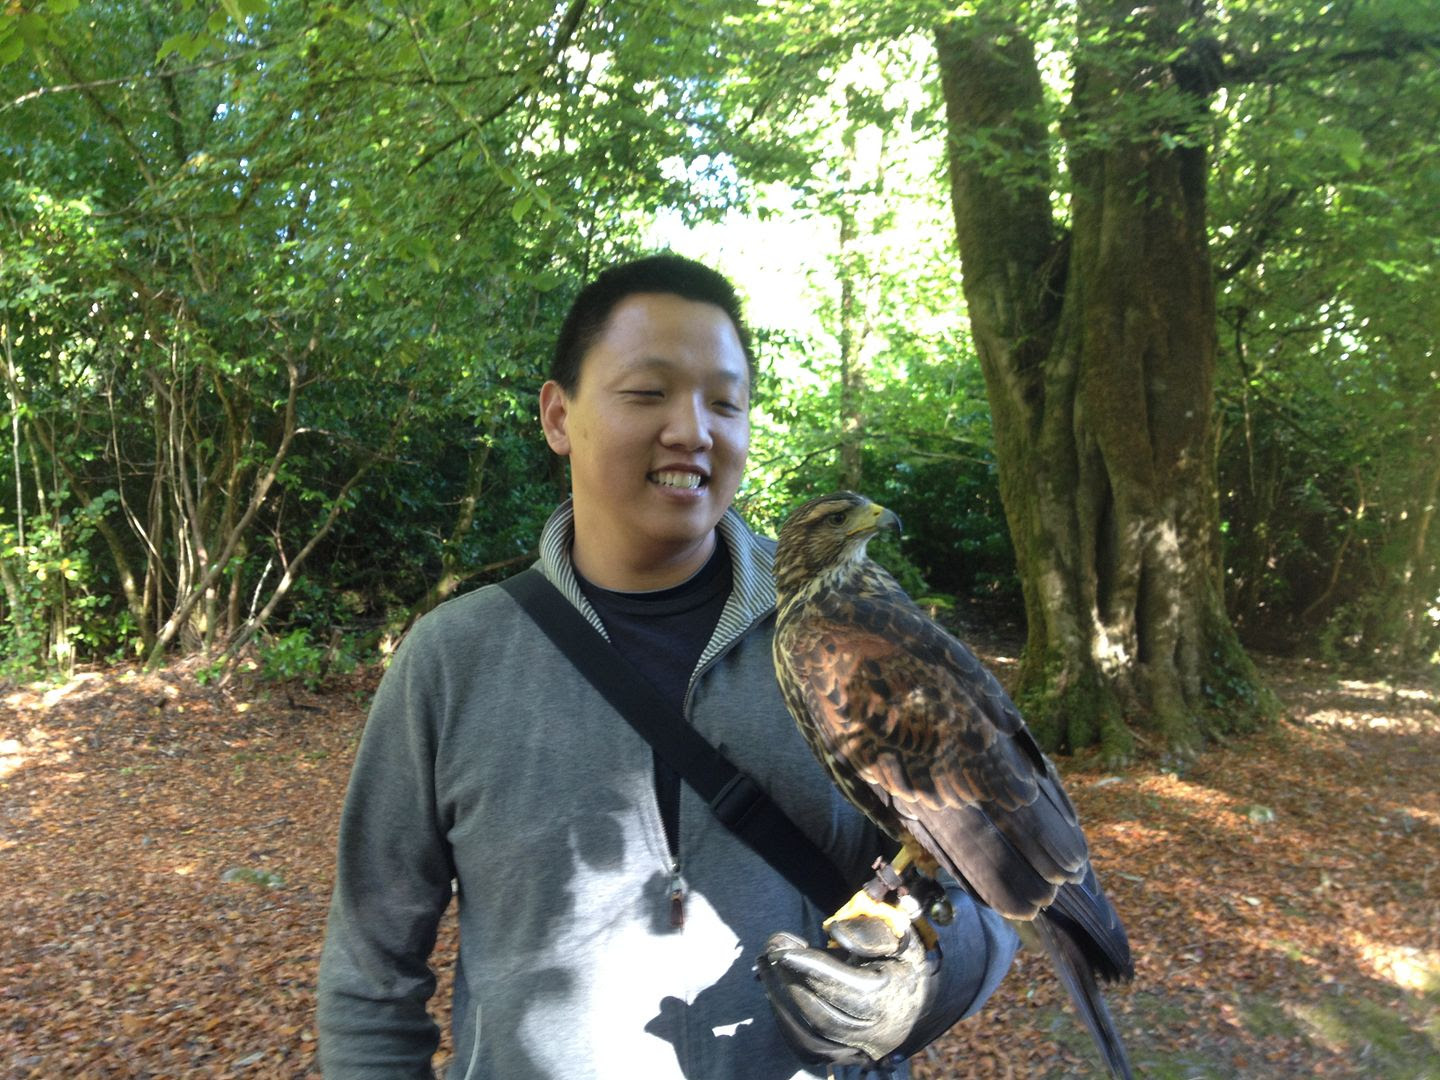 Ireland's School of Falconry Hawk Walk photo 2015-10-13 11.52.56_zpsocwxjneq.jpg